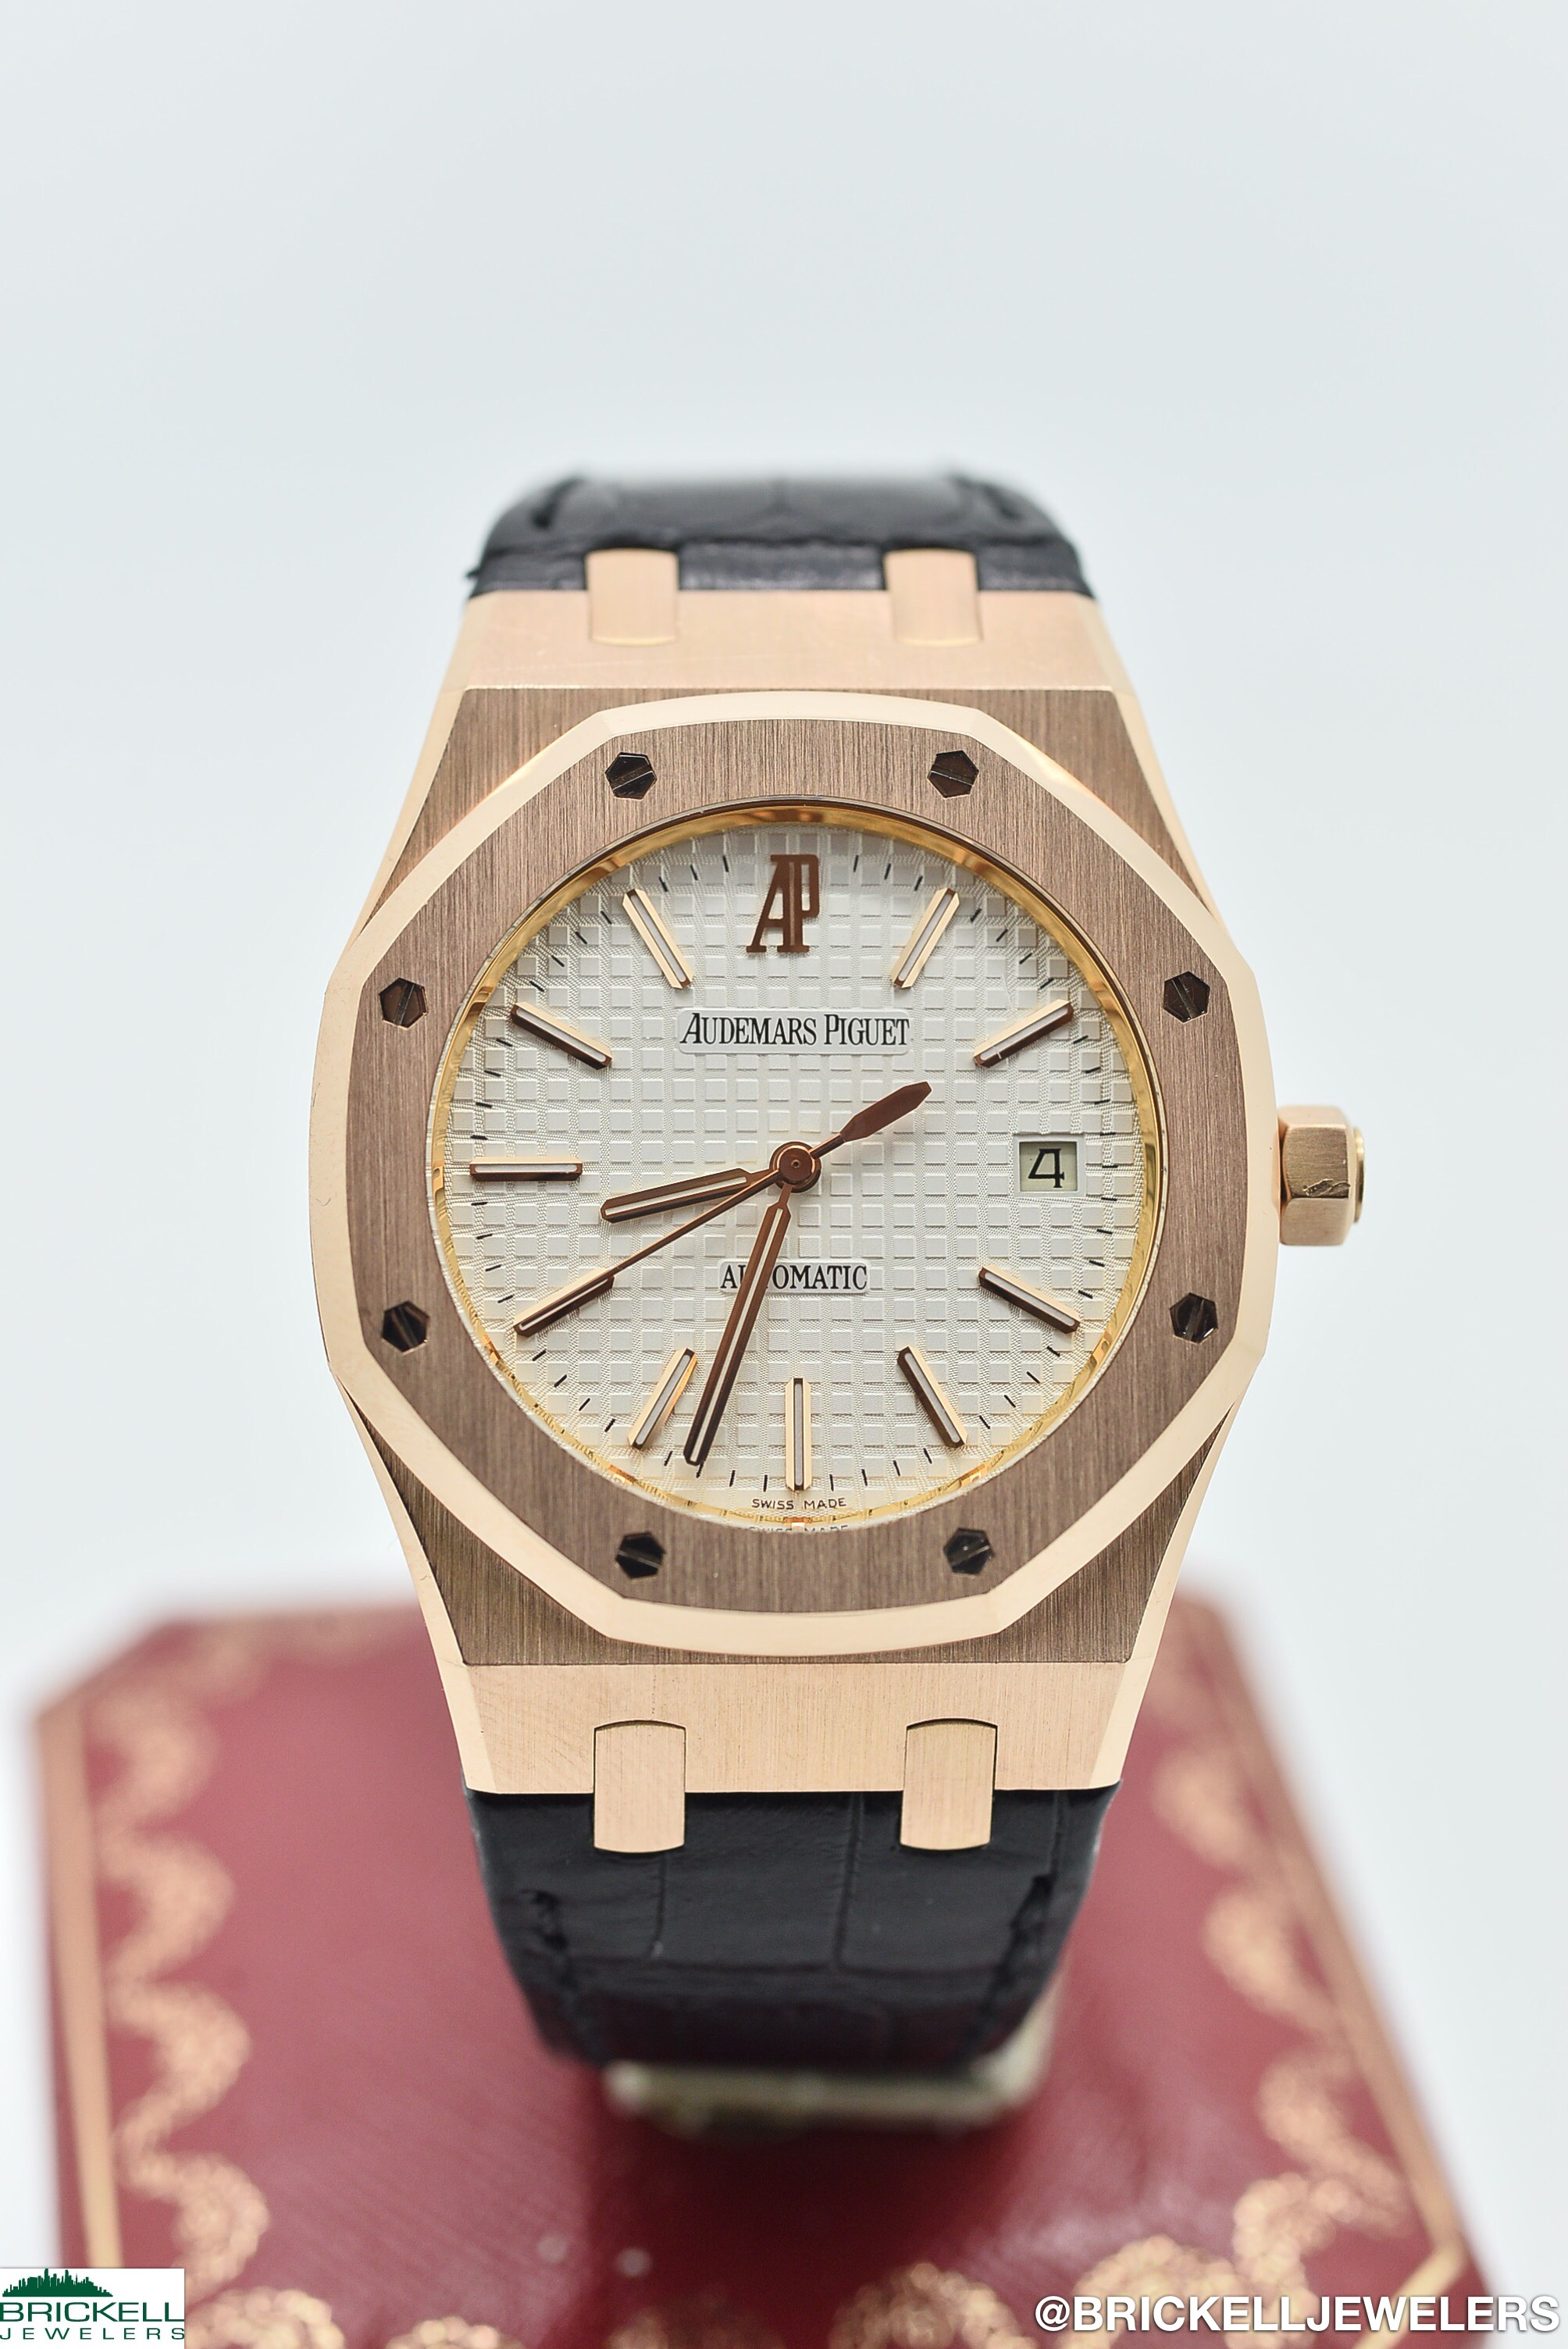 AUDEMARS PIGUET        ROYAL OAK        15300OR WHITE   18K        ROSE        Solid Gold        Genuine Leather        39MM        Mechanical (Automatic)        WATCH